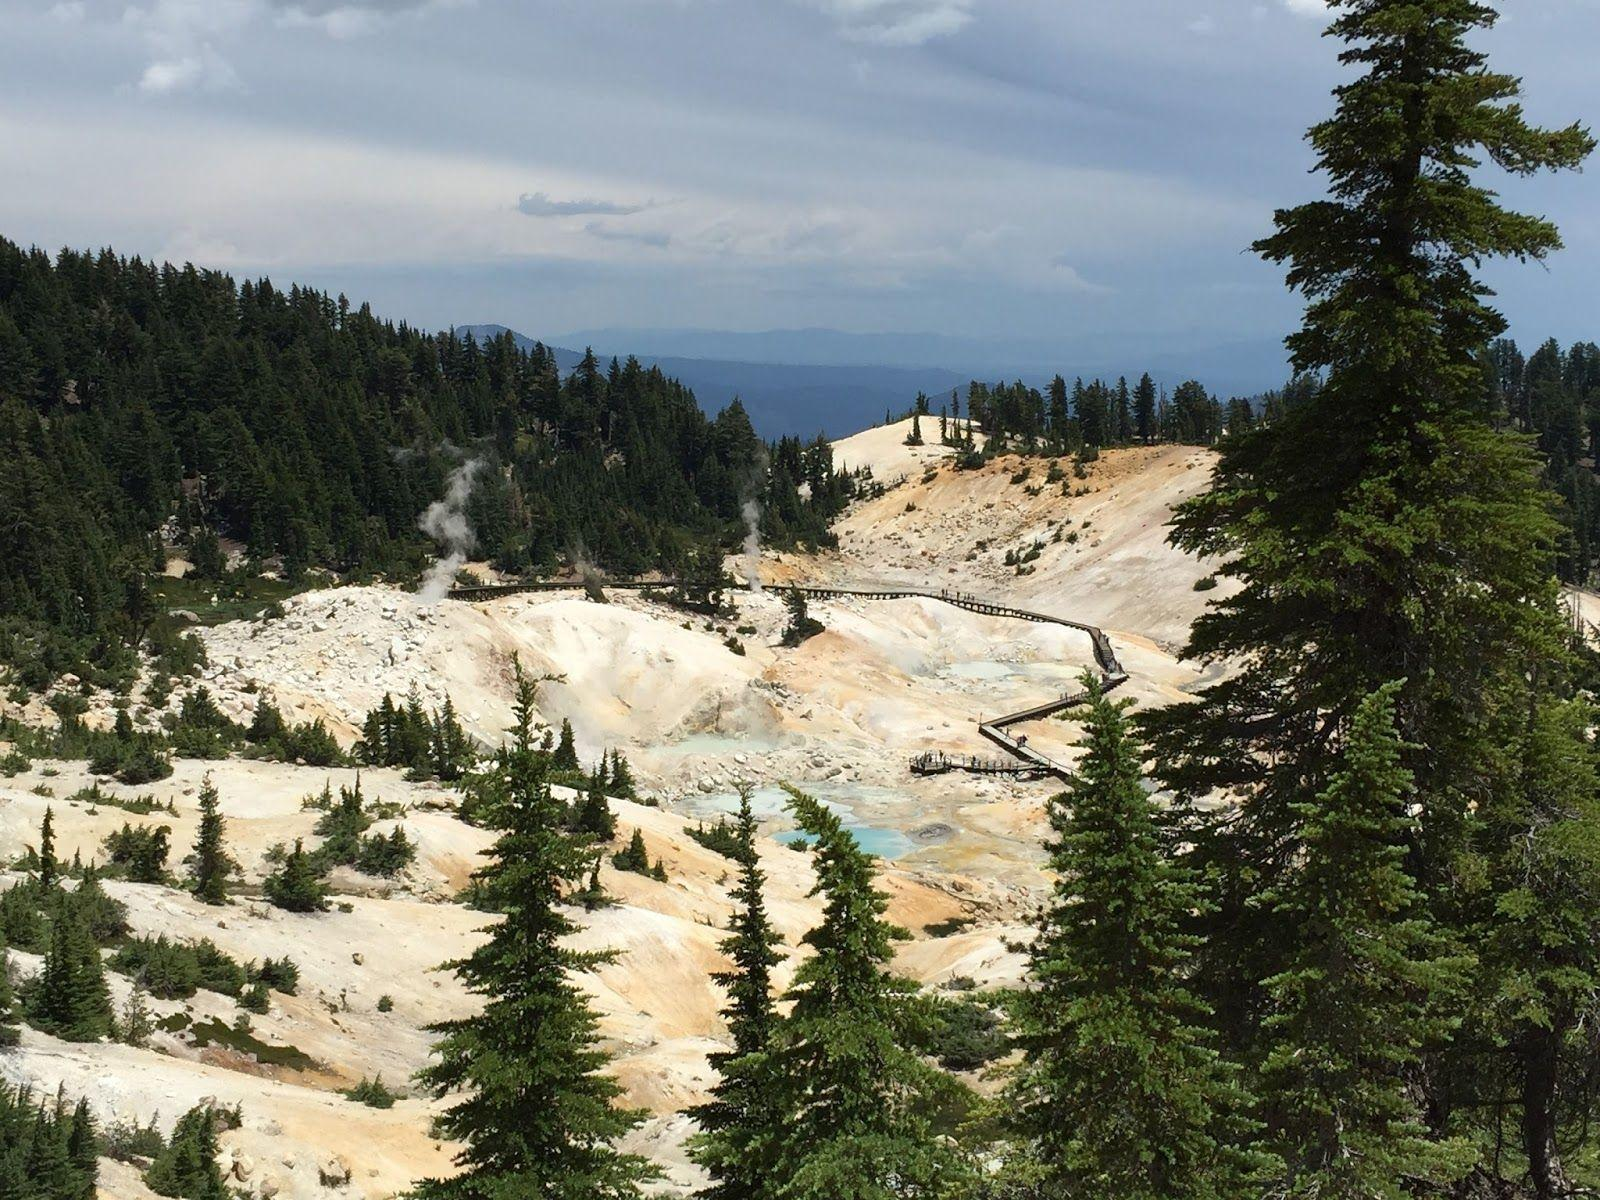 Lassen Volcanic National Park: Bumpass Hell & Mt. Lassen Hike